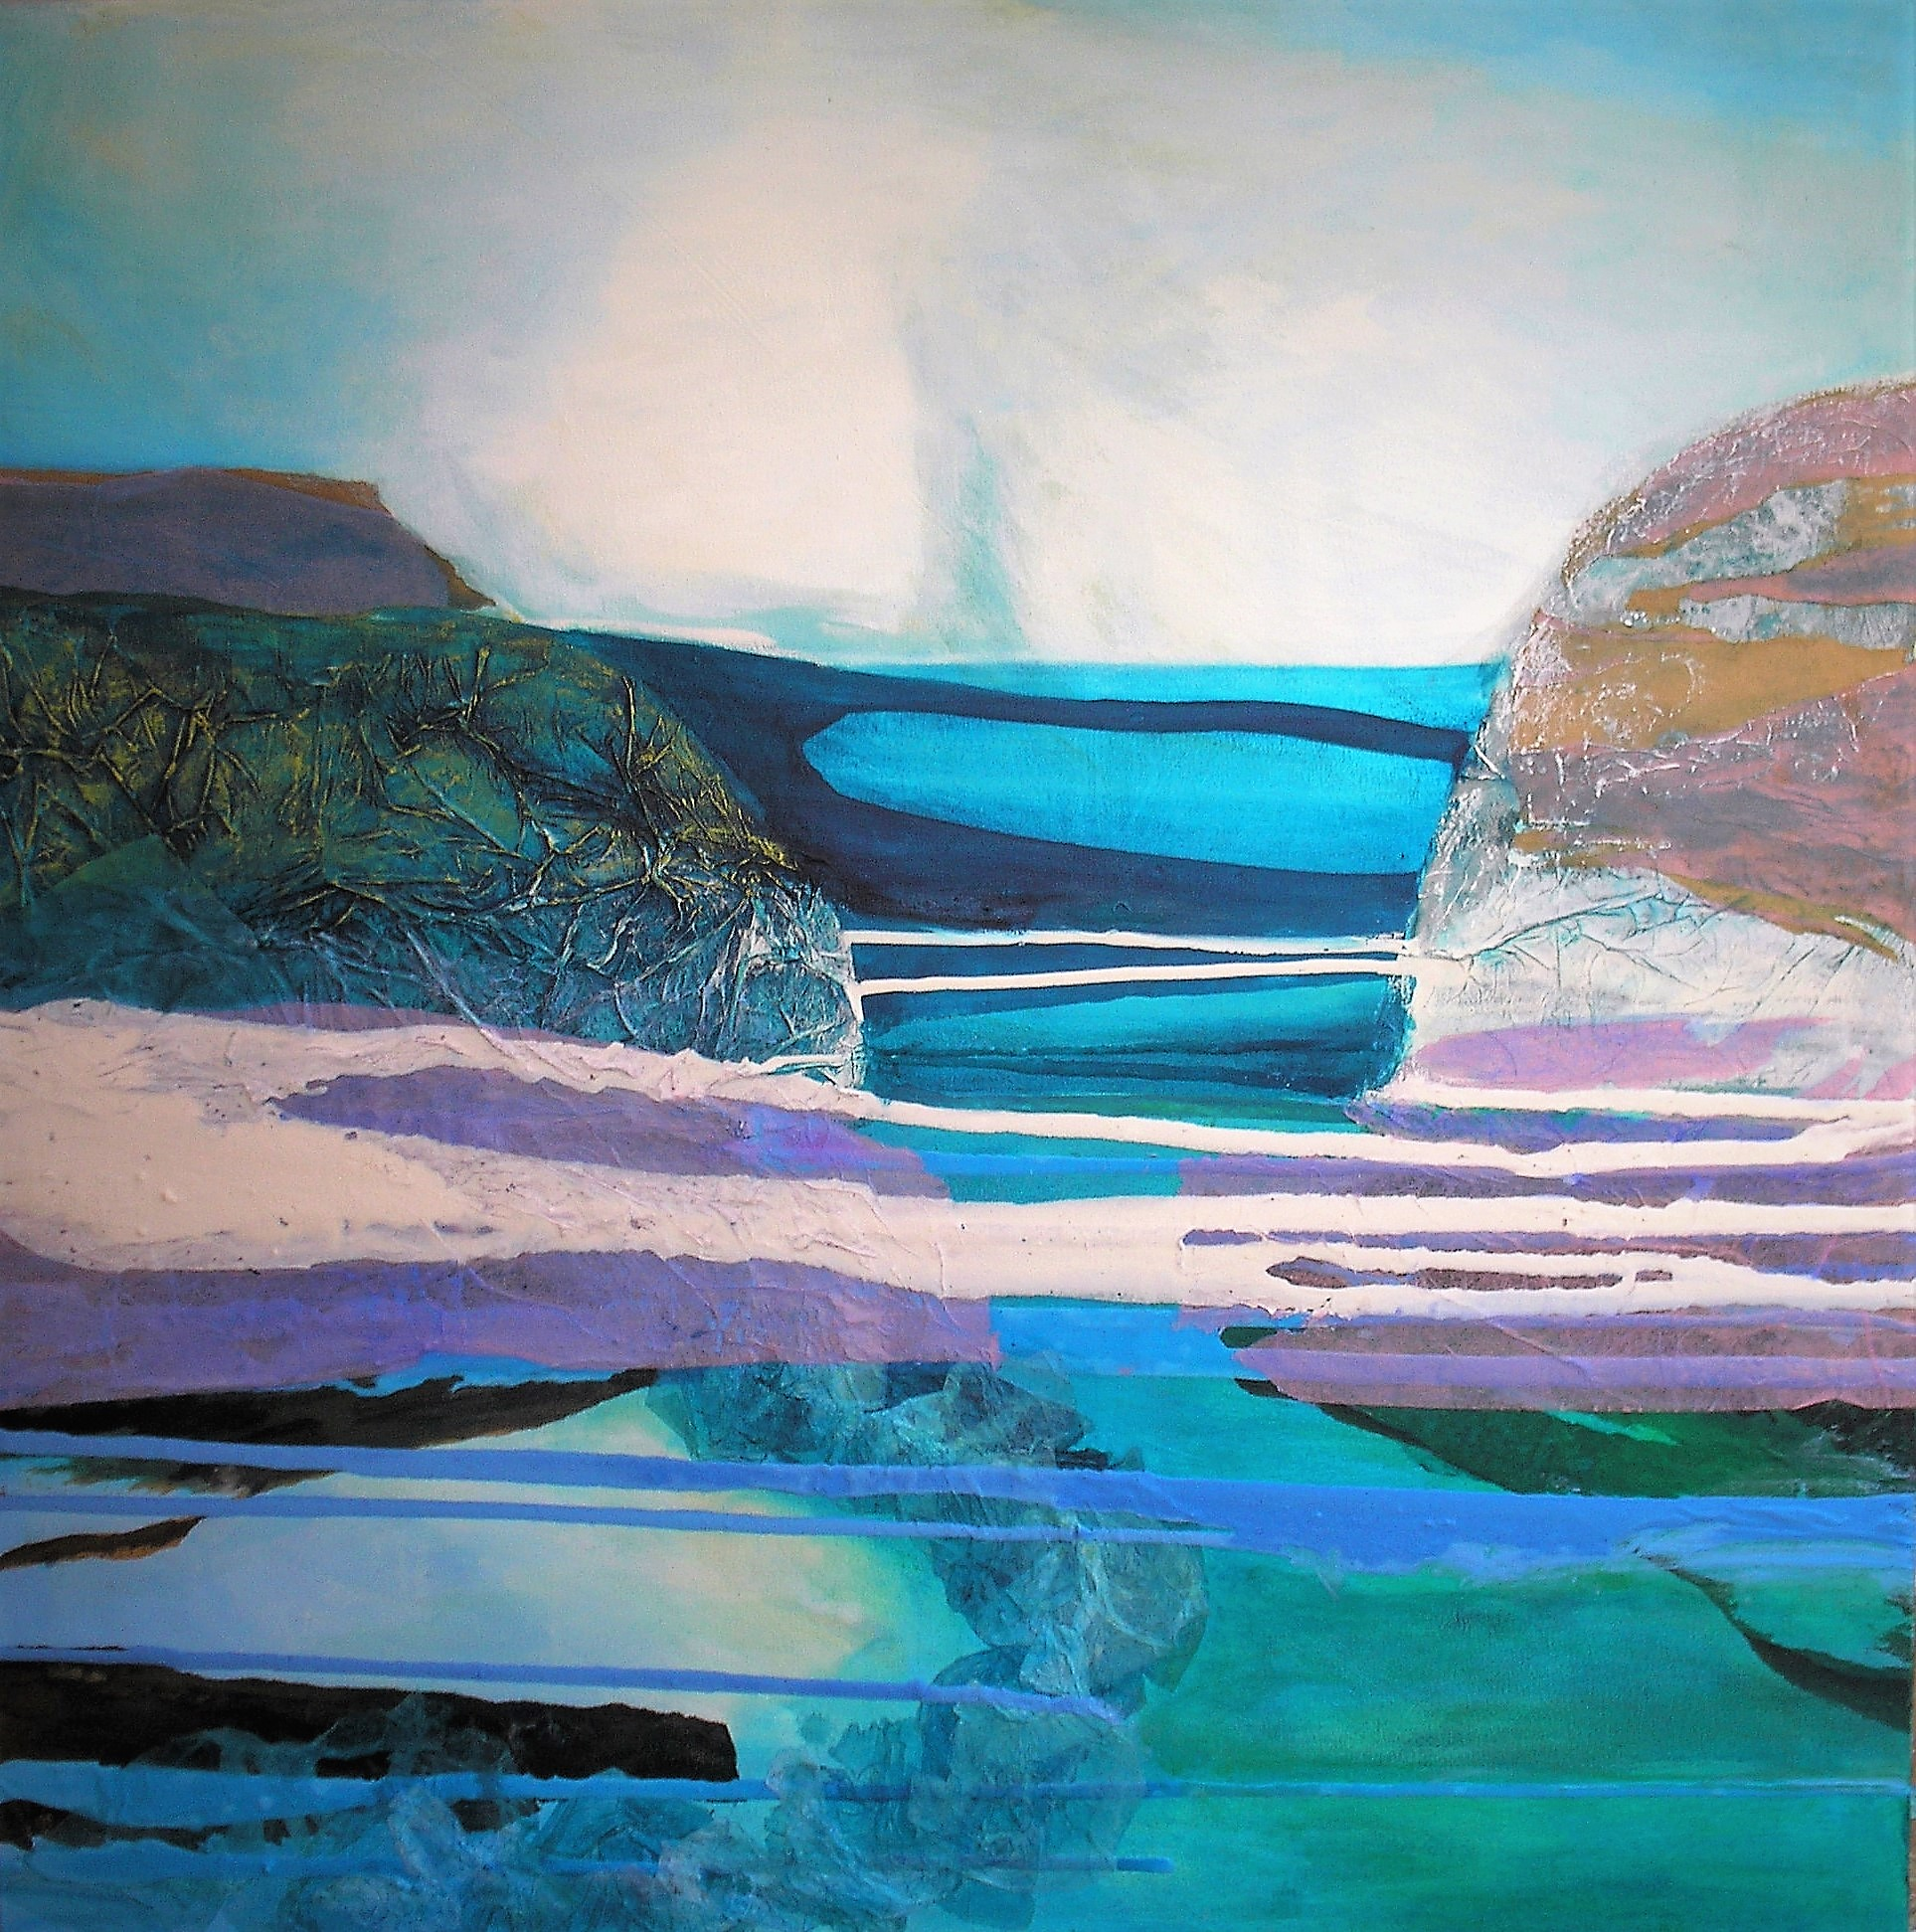 Gulf Stream by Gail de Cordova at the Saffron Walden Gallery